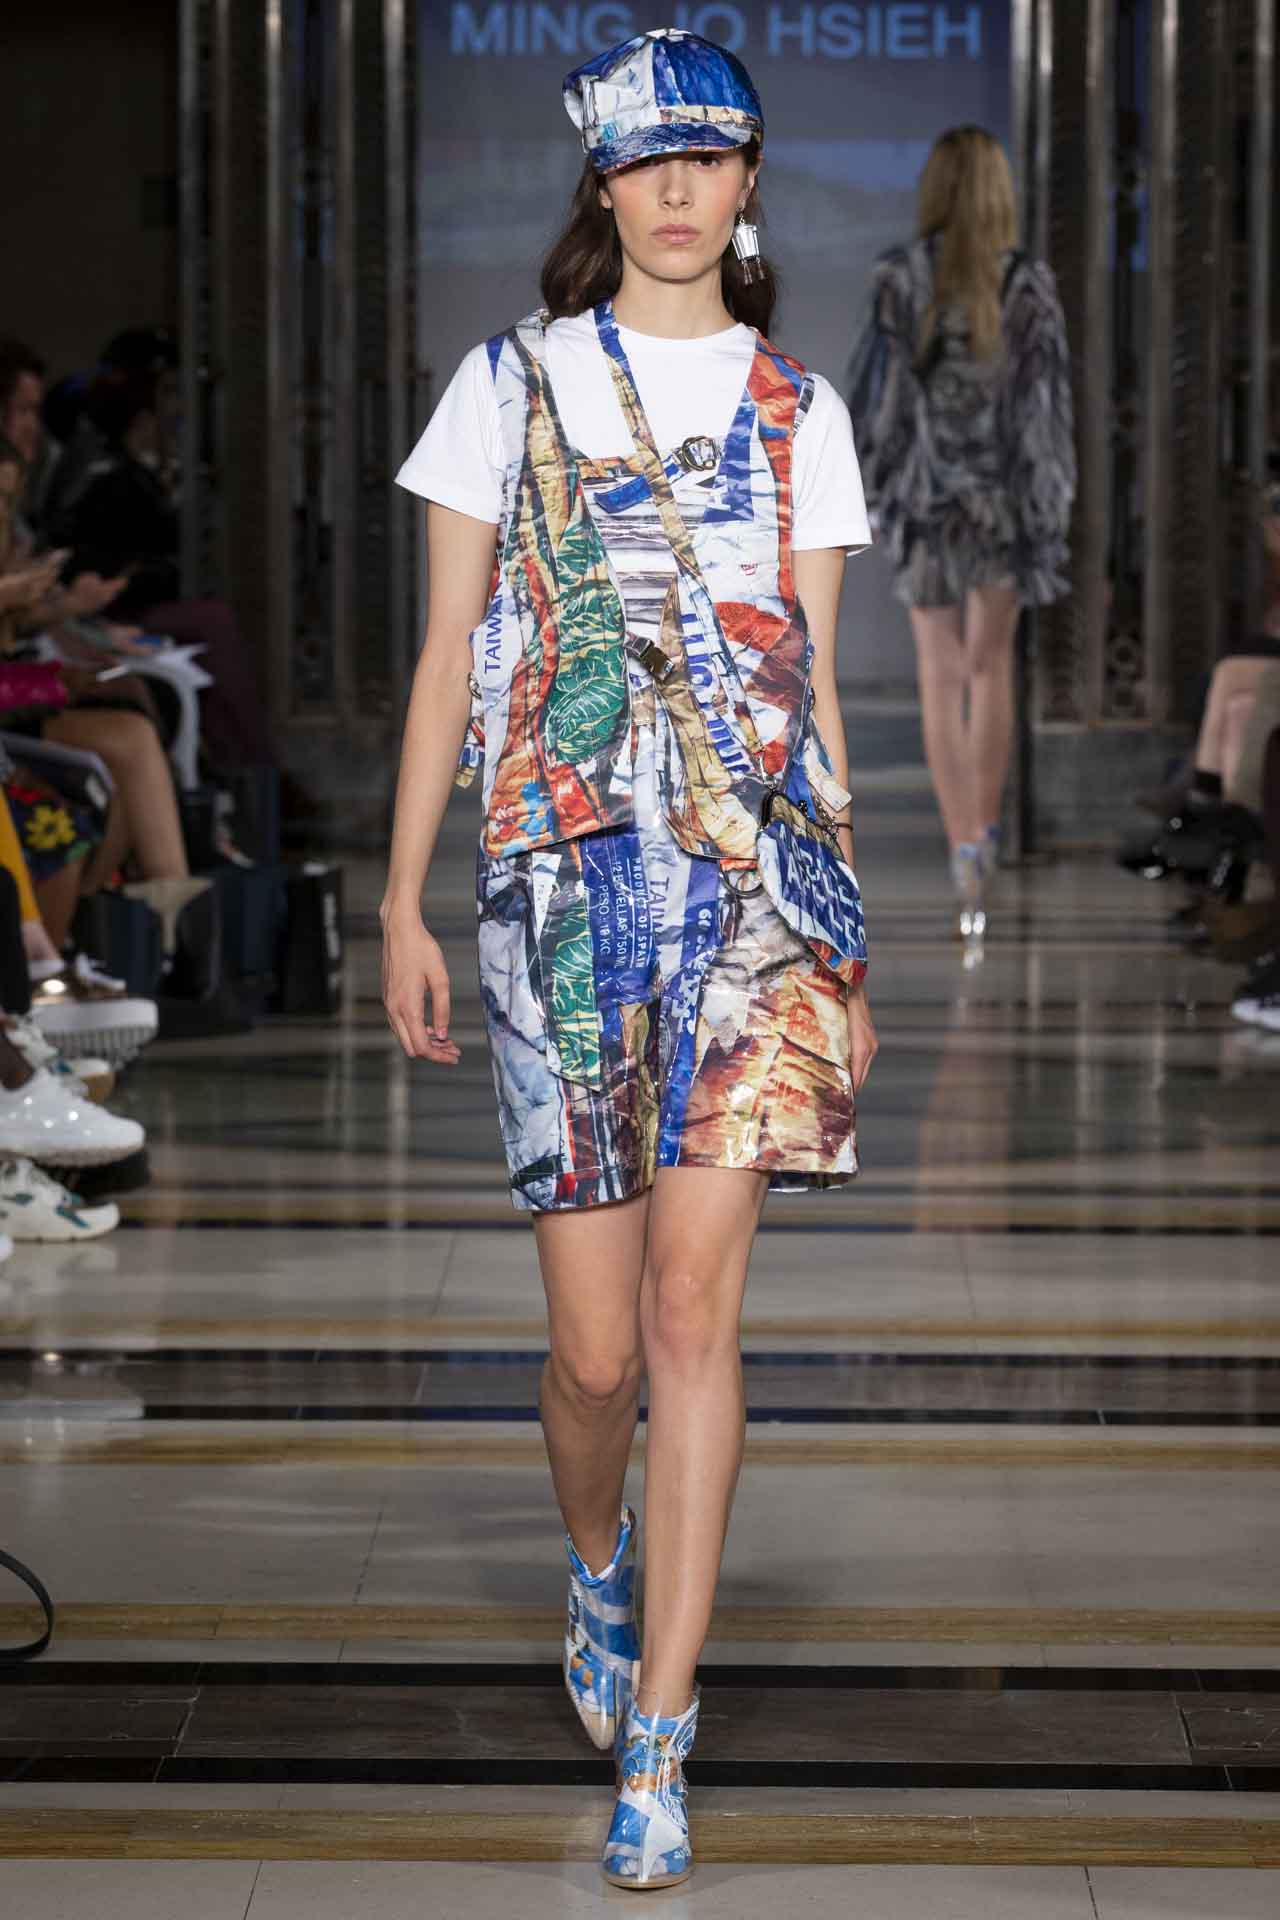 Fju talents ss19 fashion scout (9)